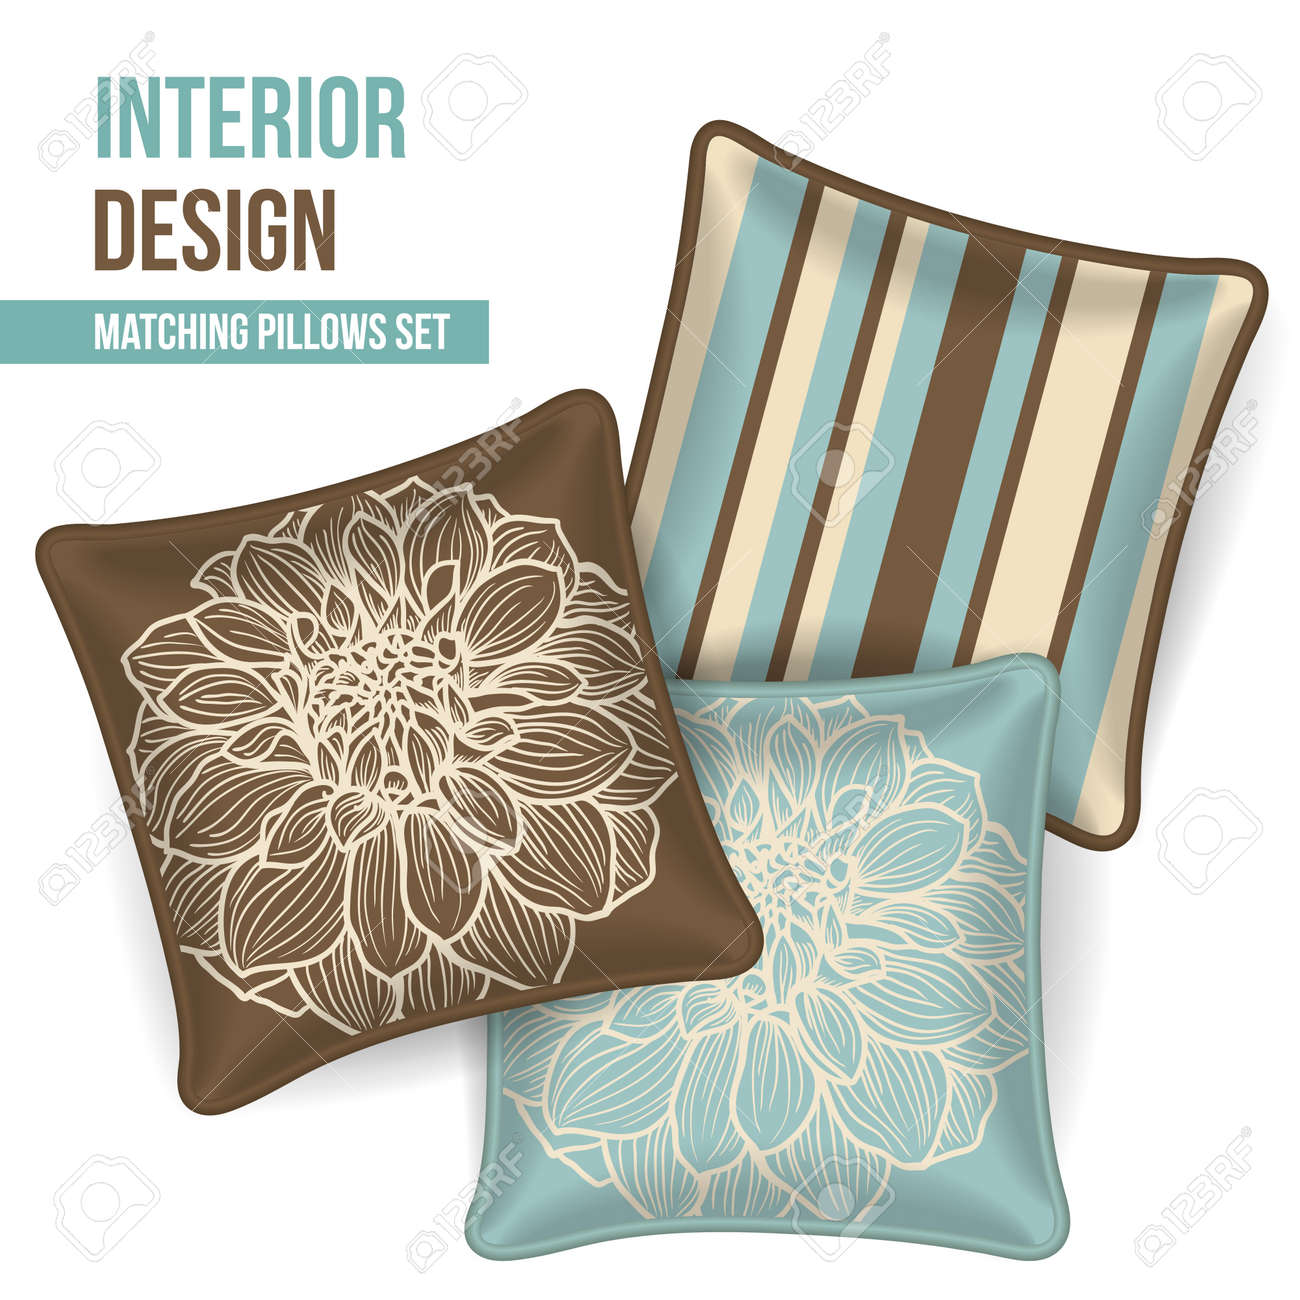 Decorative Pillow Set Set Of 3 Matching Decorative Pillows For Interior Design Brown